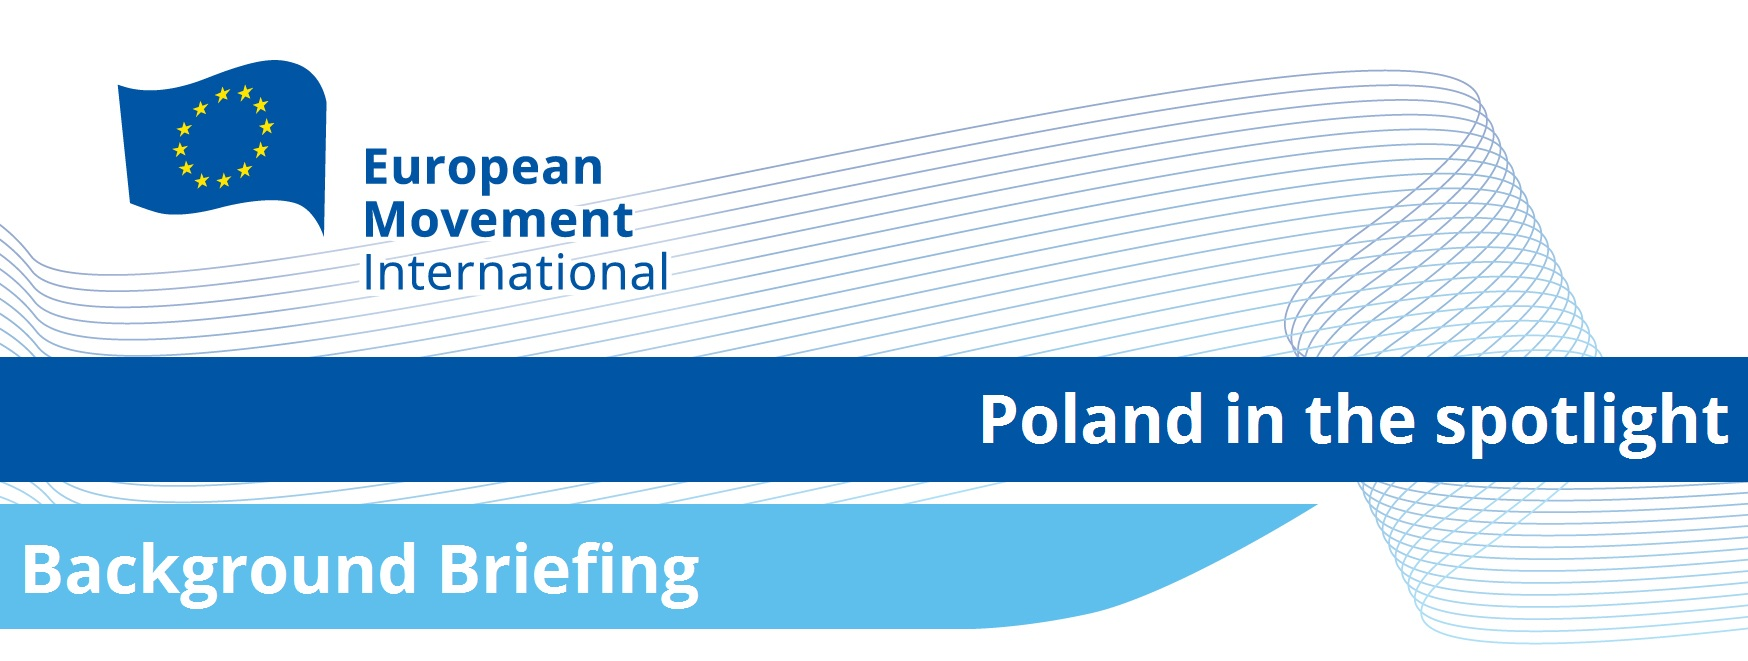 EMI Background Briefing: Poland in the spotlight